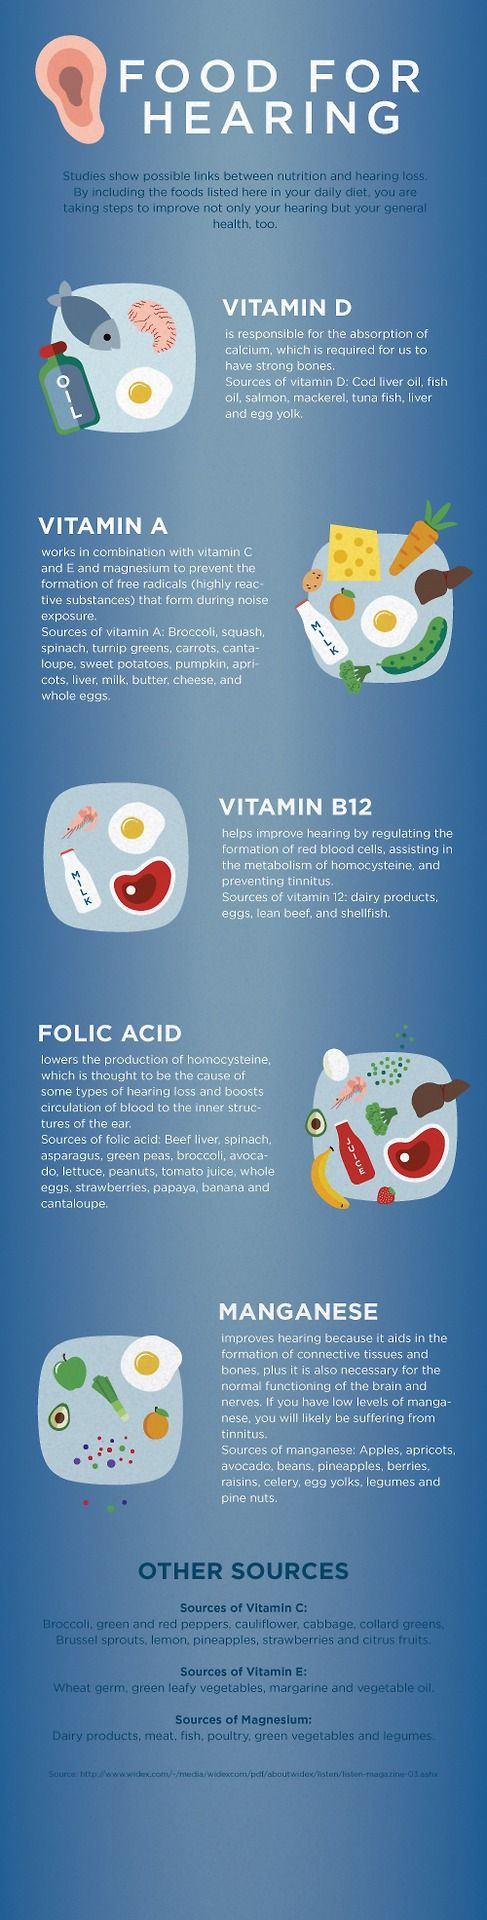 INFOGRAPHIC: We all know that vitamins work to keep us healthy, but did you know that vitamins can help your hearing as well? Studies show possible links between nutrition and hearing loss. Here are some foods that are chock full of ear-friendly vitamins. Add them to your grocery list today! Source: Widex Listen Now, Magazine 3